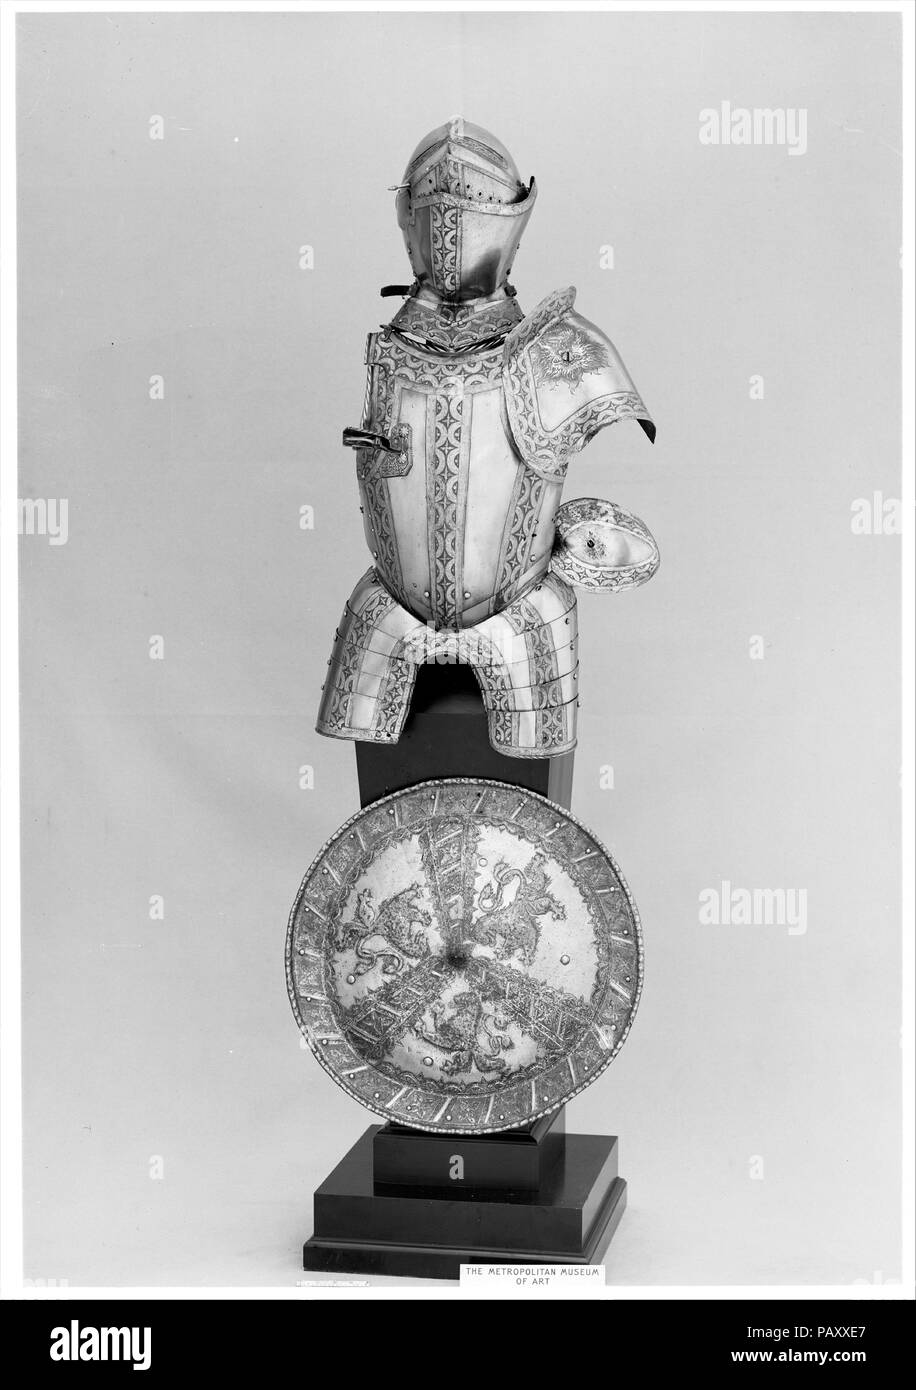 Elements Augsburg Portions Of An Armor Garniture Culture German Augsburg Etcher